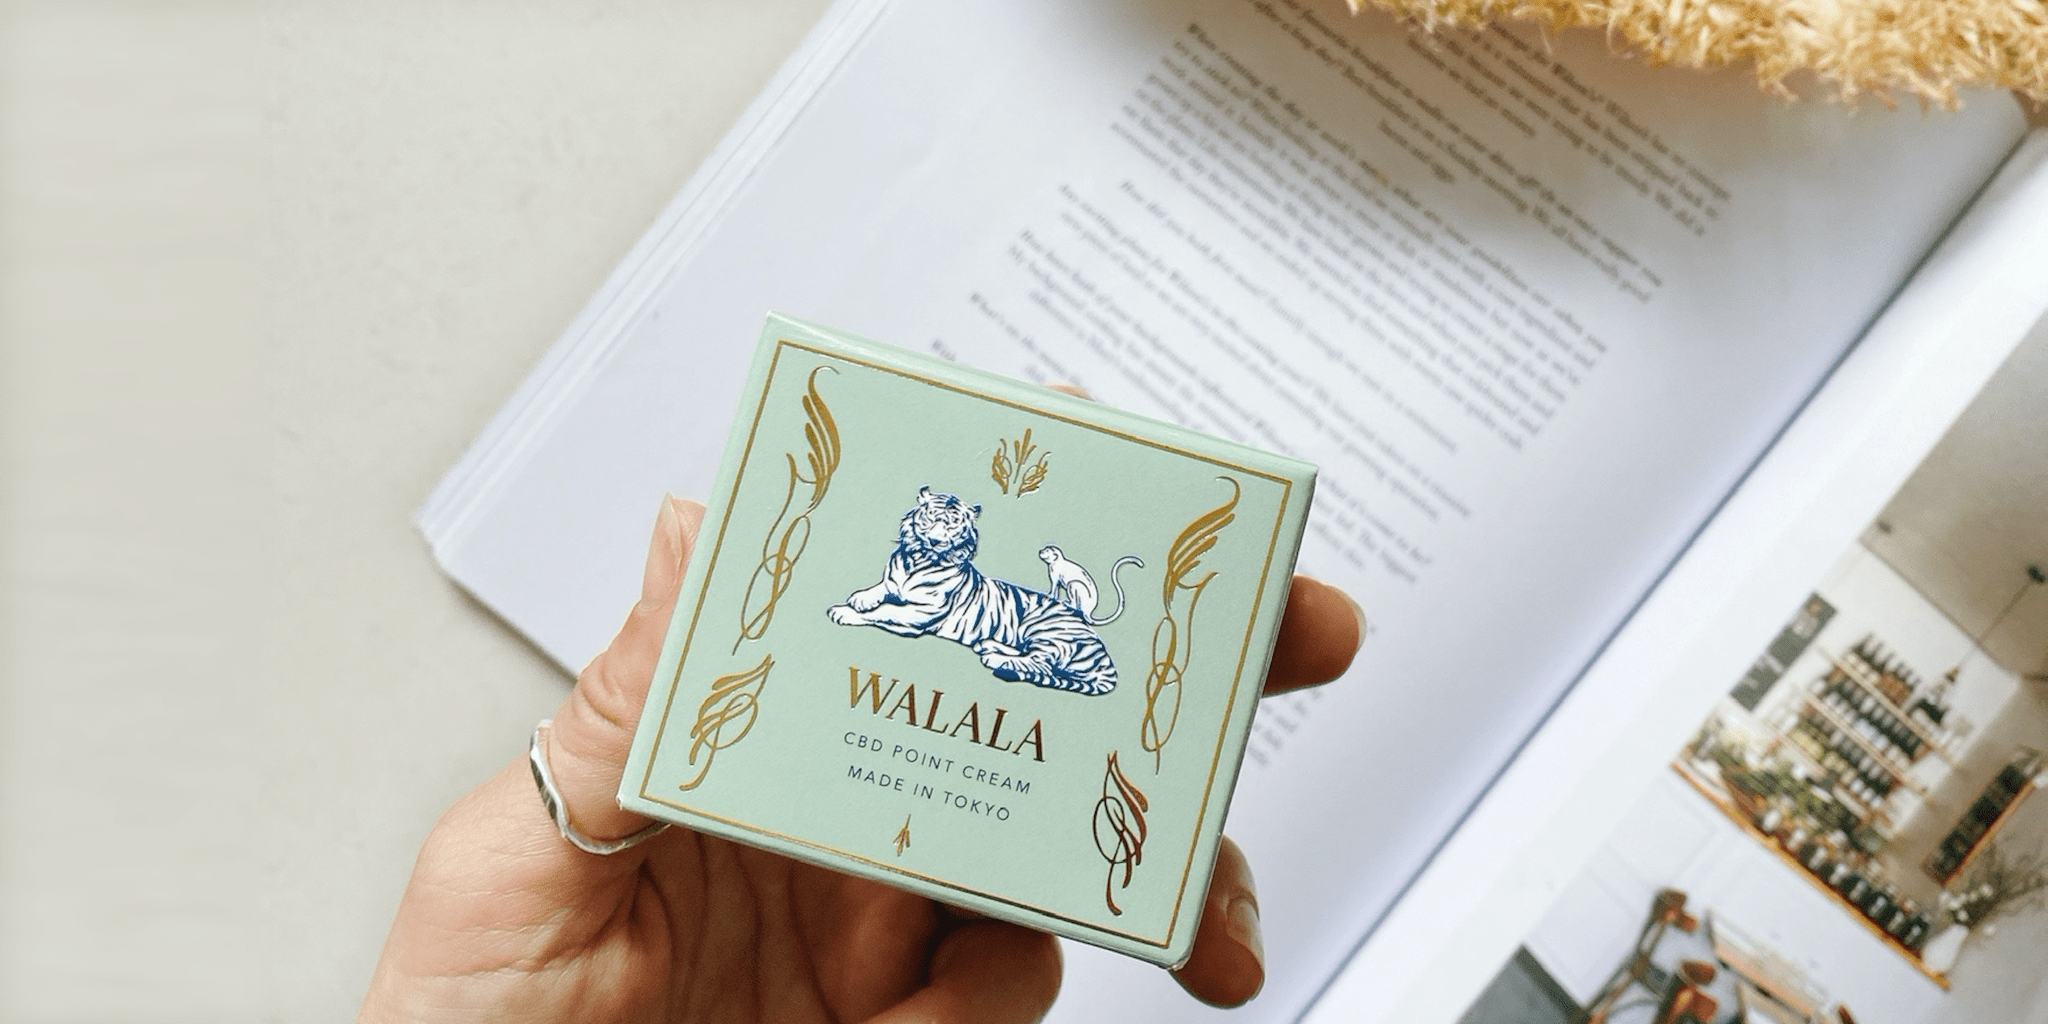 What to know when using WALALA's CBD